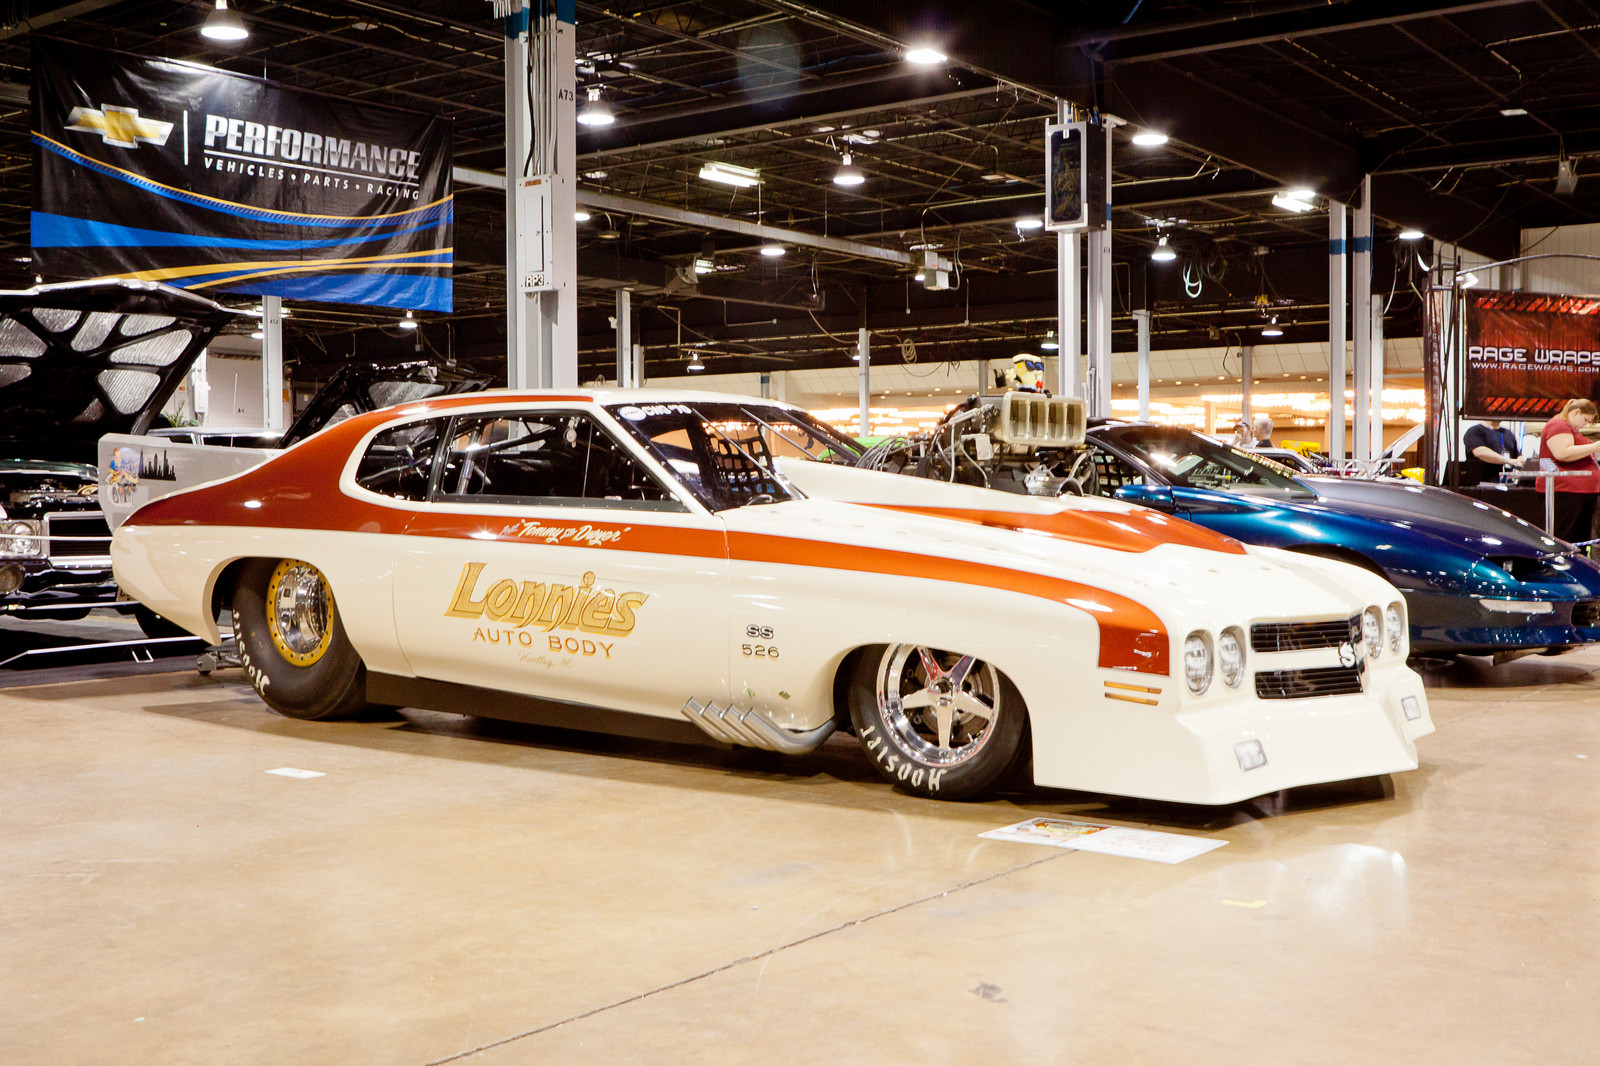 Cream/Orange 1970 Chevrolet Chevelle SS